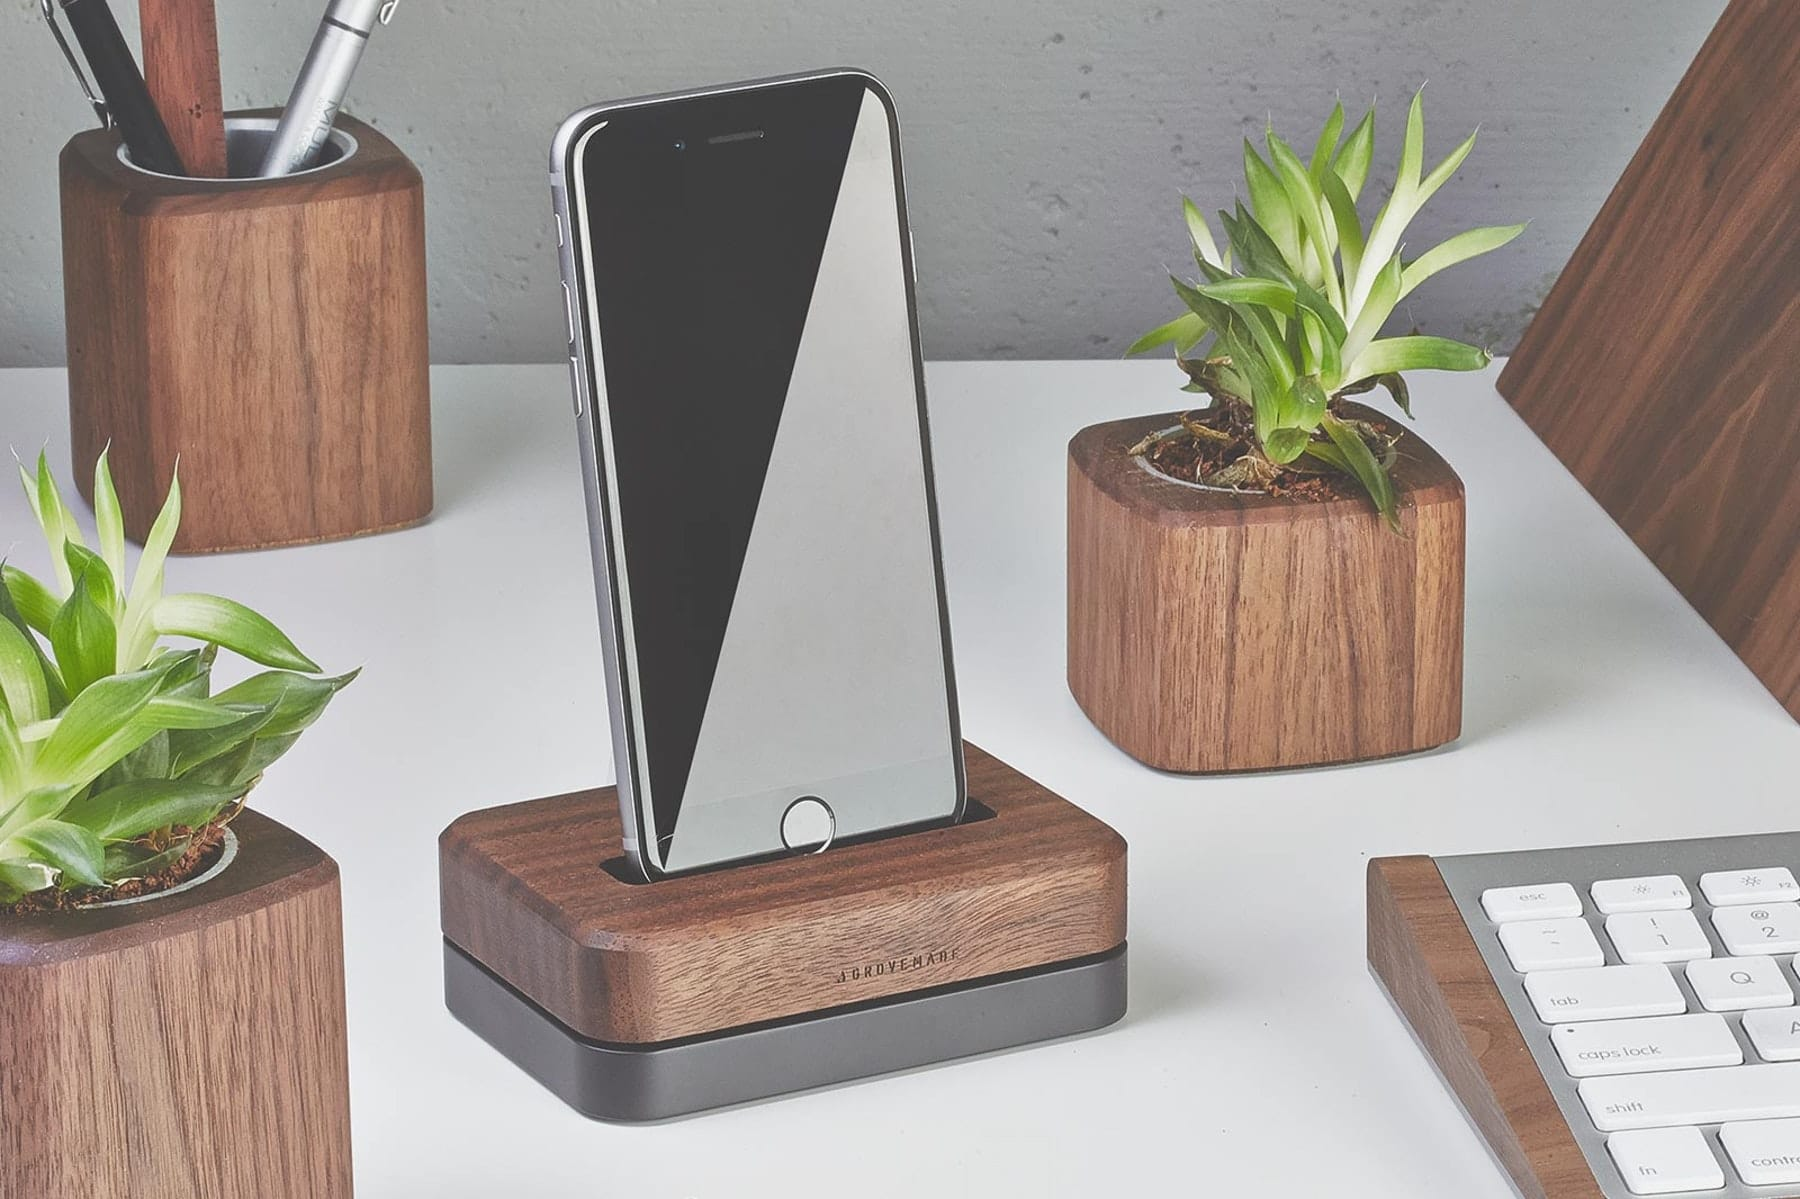 grovemade iphone dock